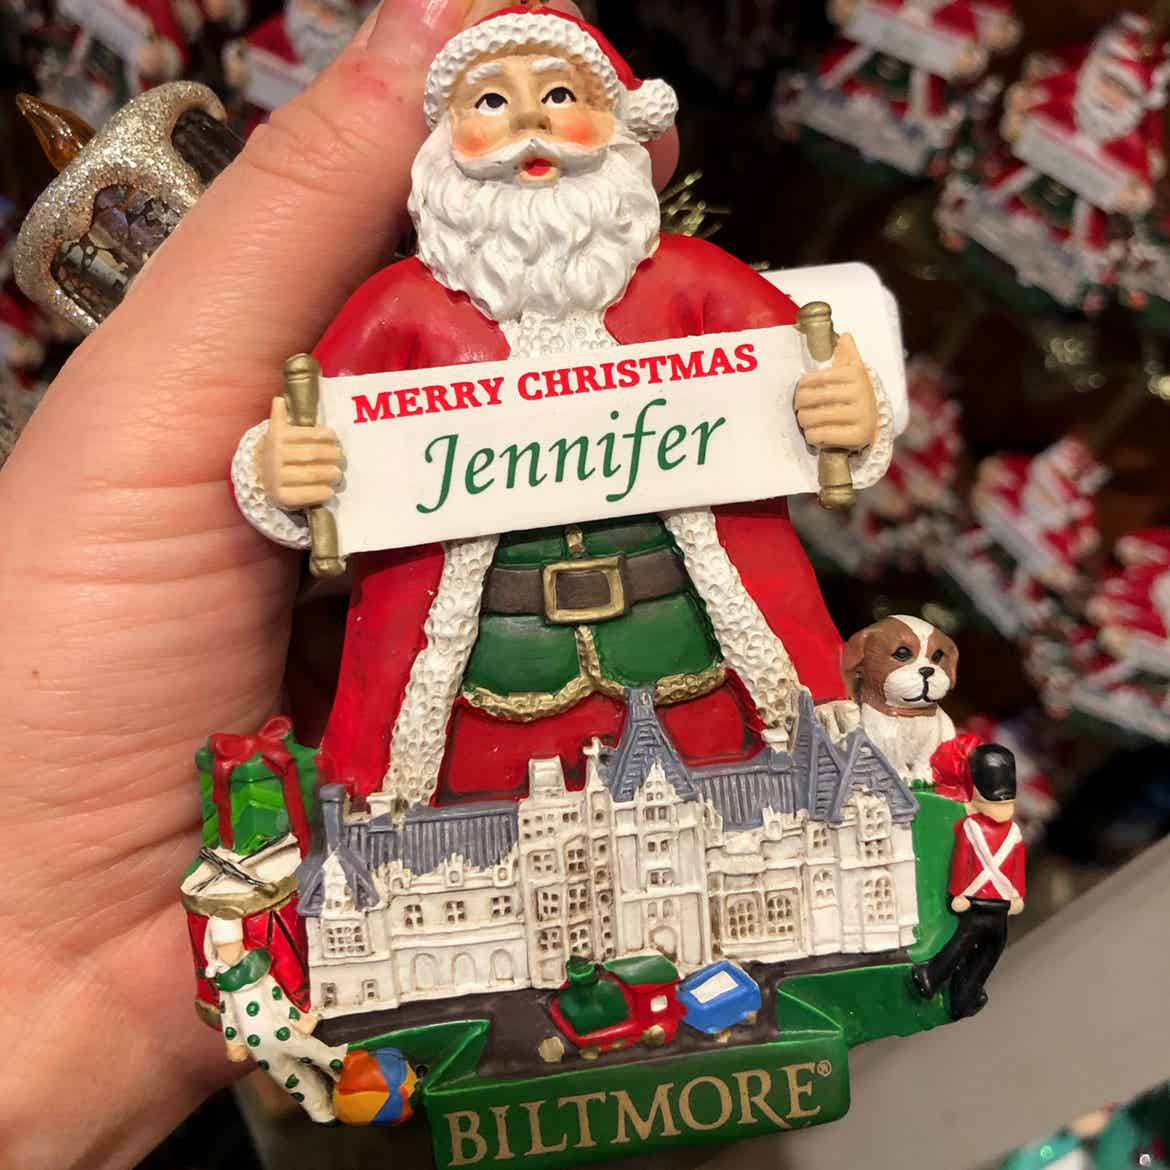 Author, Jenn C. Harmon, holds a Santa Claus ornament which holds a sign that reads, 'Merry Christmas Jennifer' standing behind the silhouette of the Biltmore Estate.